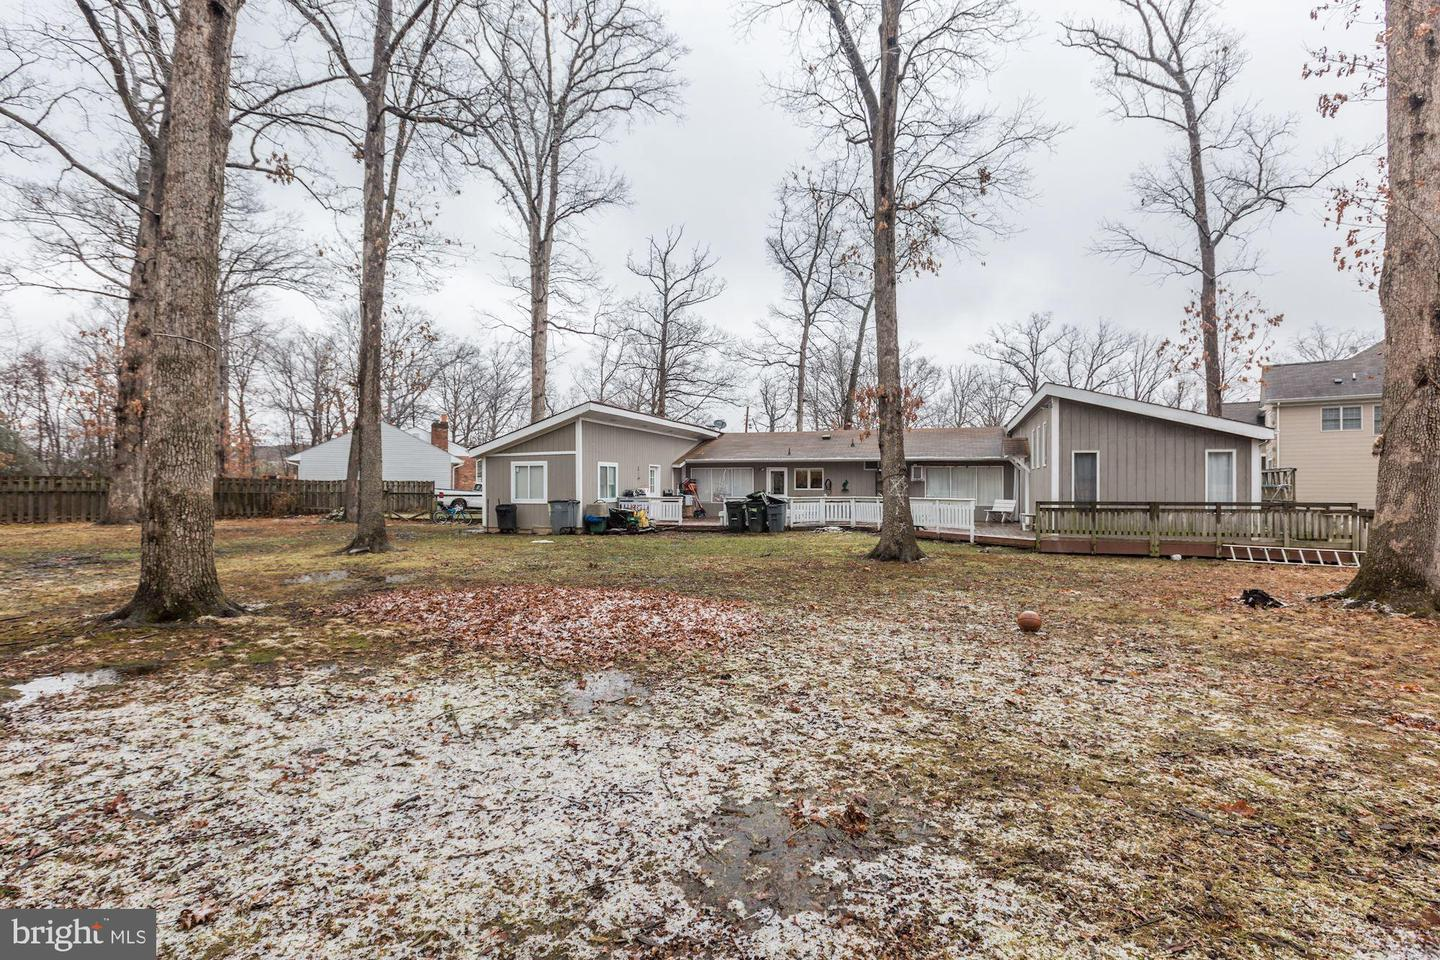 Additional photo for property listing at 501 Bowers Ln Herndon, Virginia 20170 United States